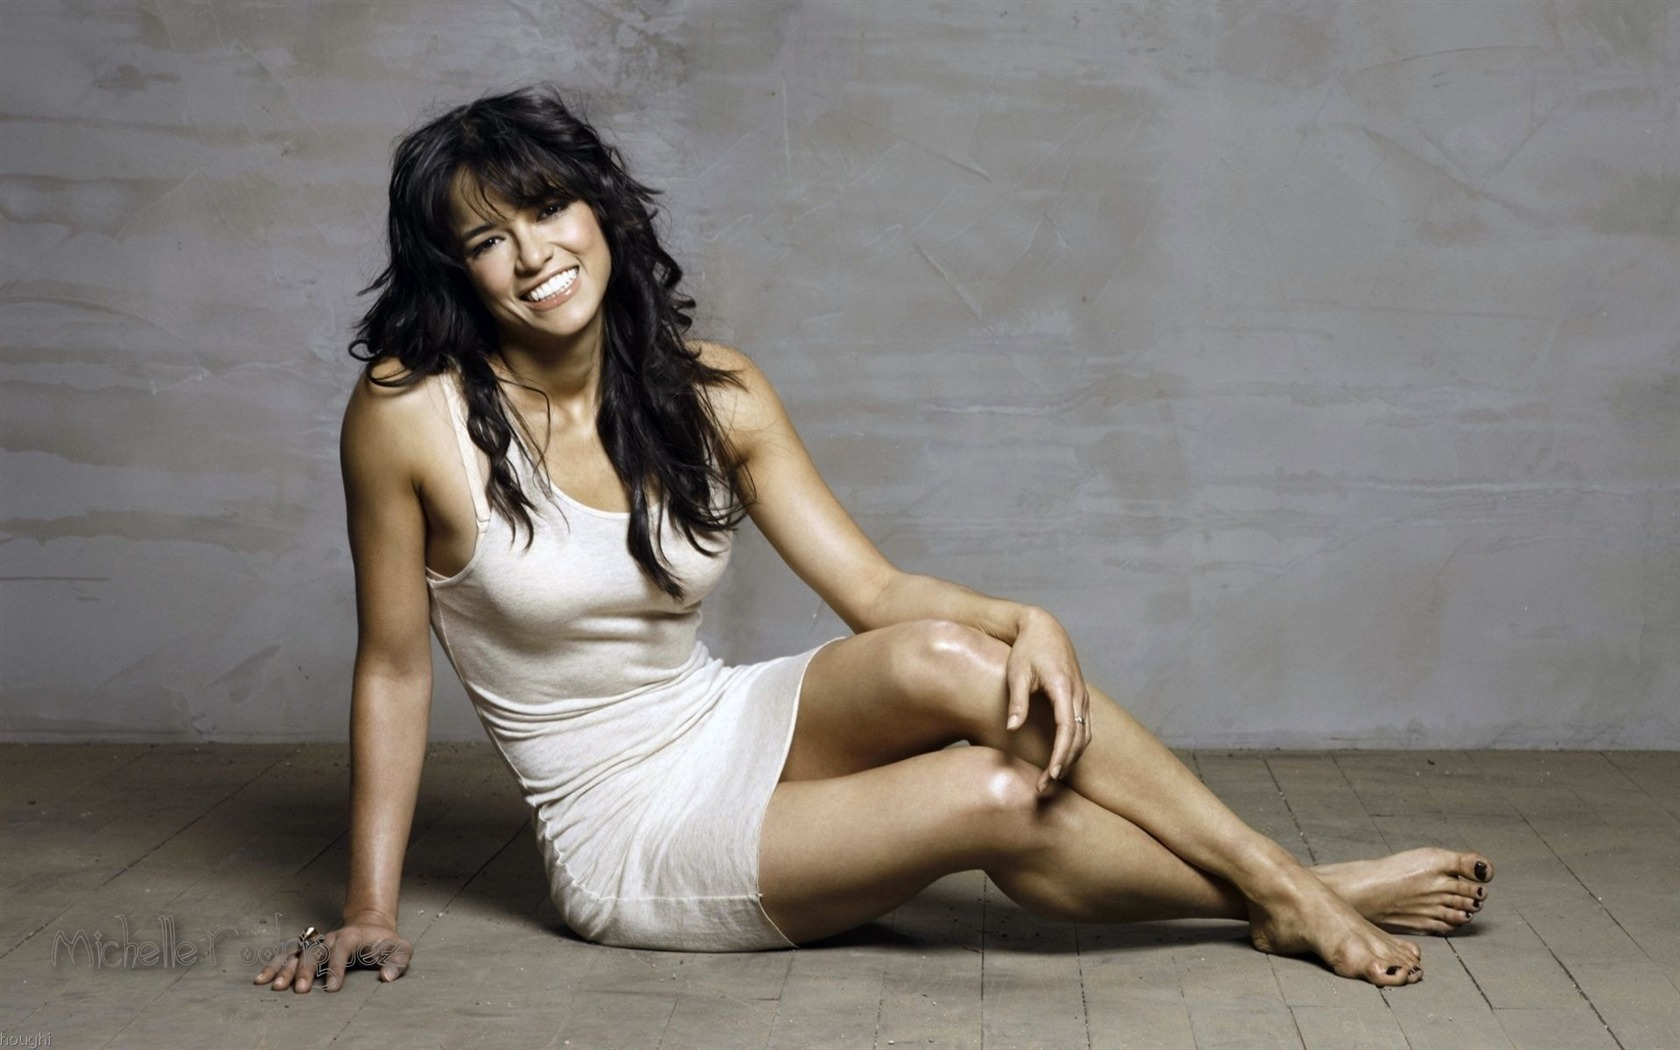 Michelle Rodriguez #002 - 1680x1050 Wallpapers Pictures Photos Images